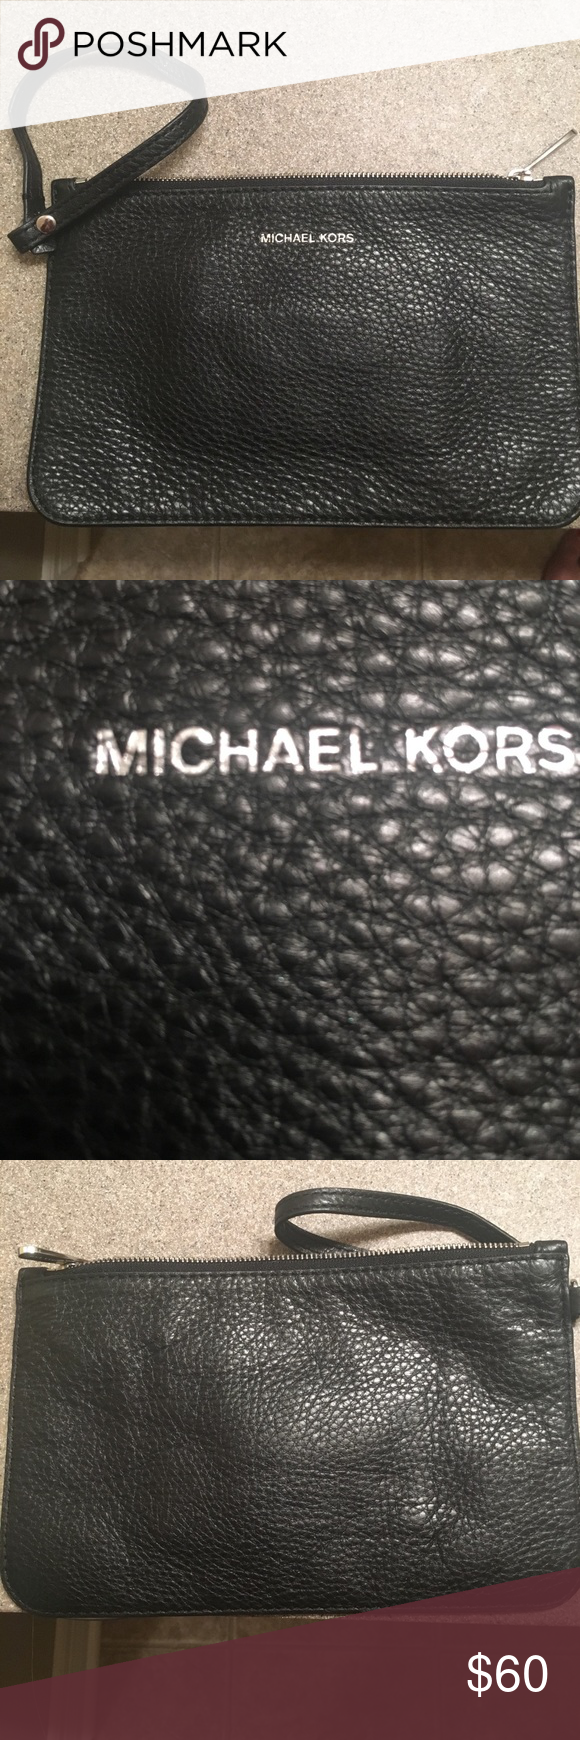 NWOT Authentic Michael Kors Wristlet Small, black wristlet. Never used. Smoke free home. Has three pockets for credit cards. Great to take for a night out! No trades. WILL BUNDLE W/MATCHING WRISTLET IN OTHER POST FOR $175 total! (Savings of $21)! Michael Kors Bags Clutches & Wristlets